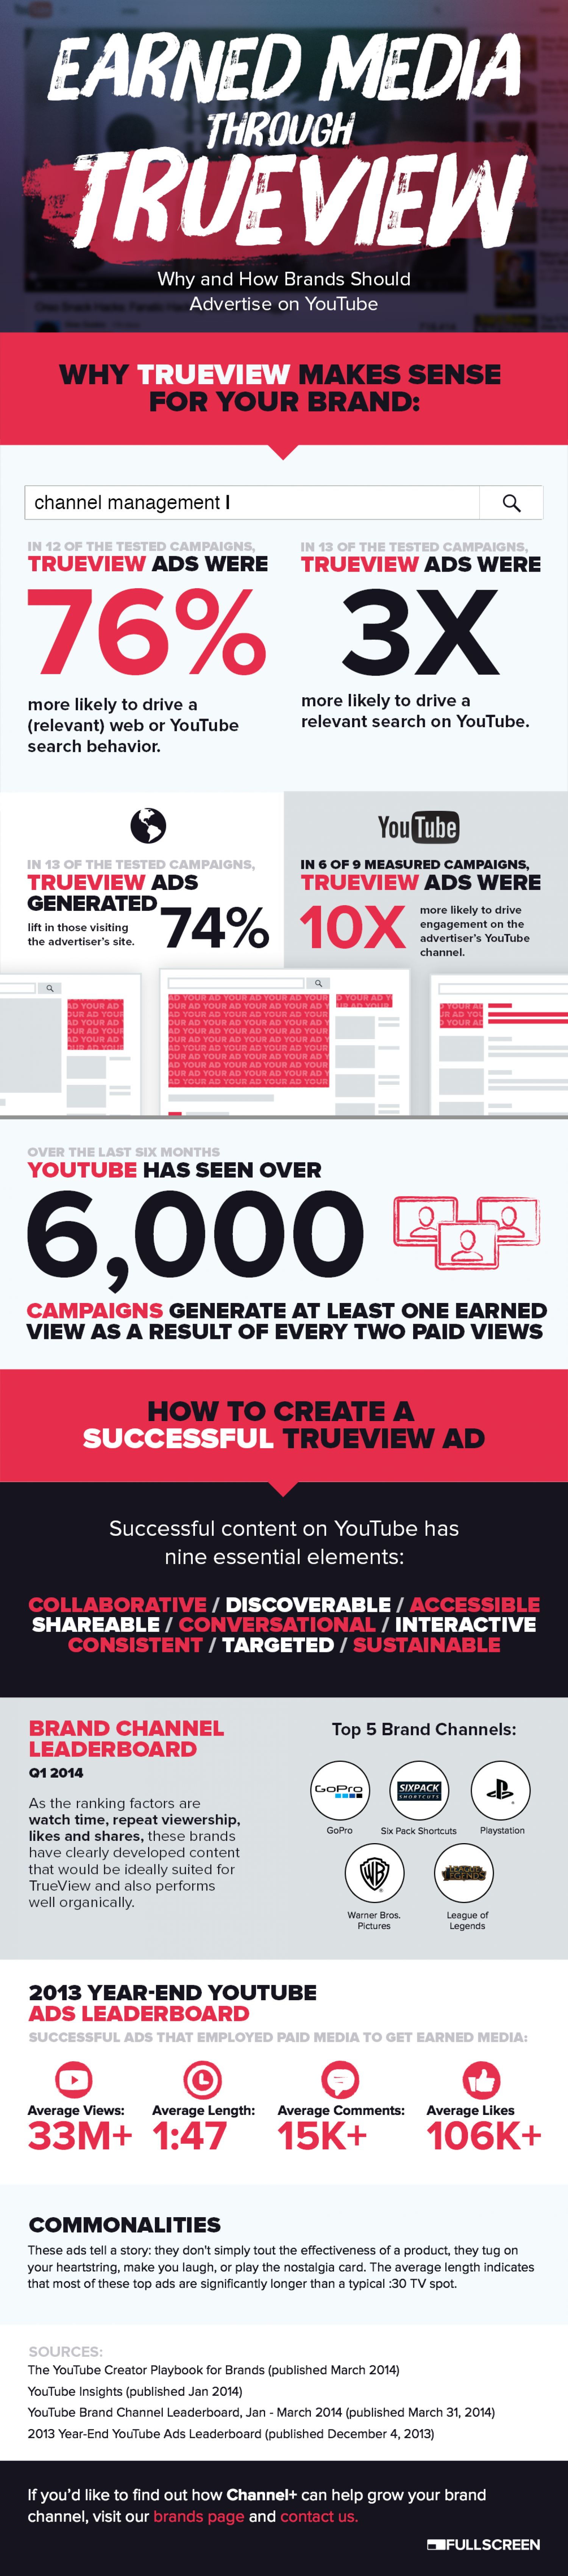 Earned Media Through TrueView Infographic